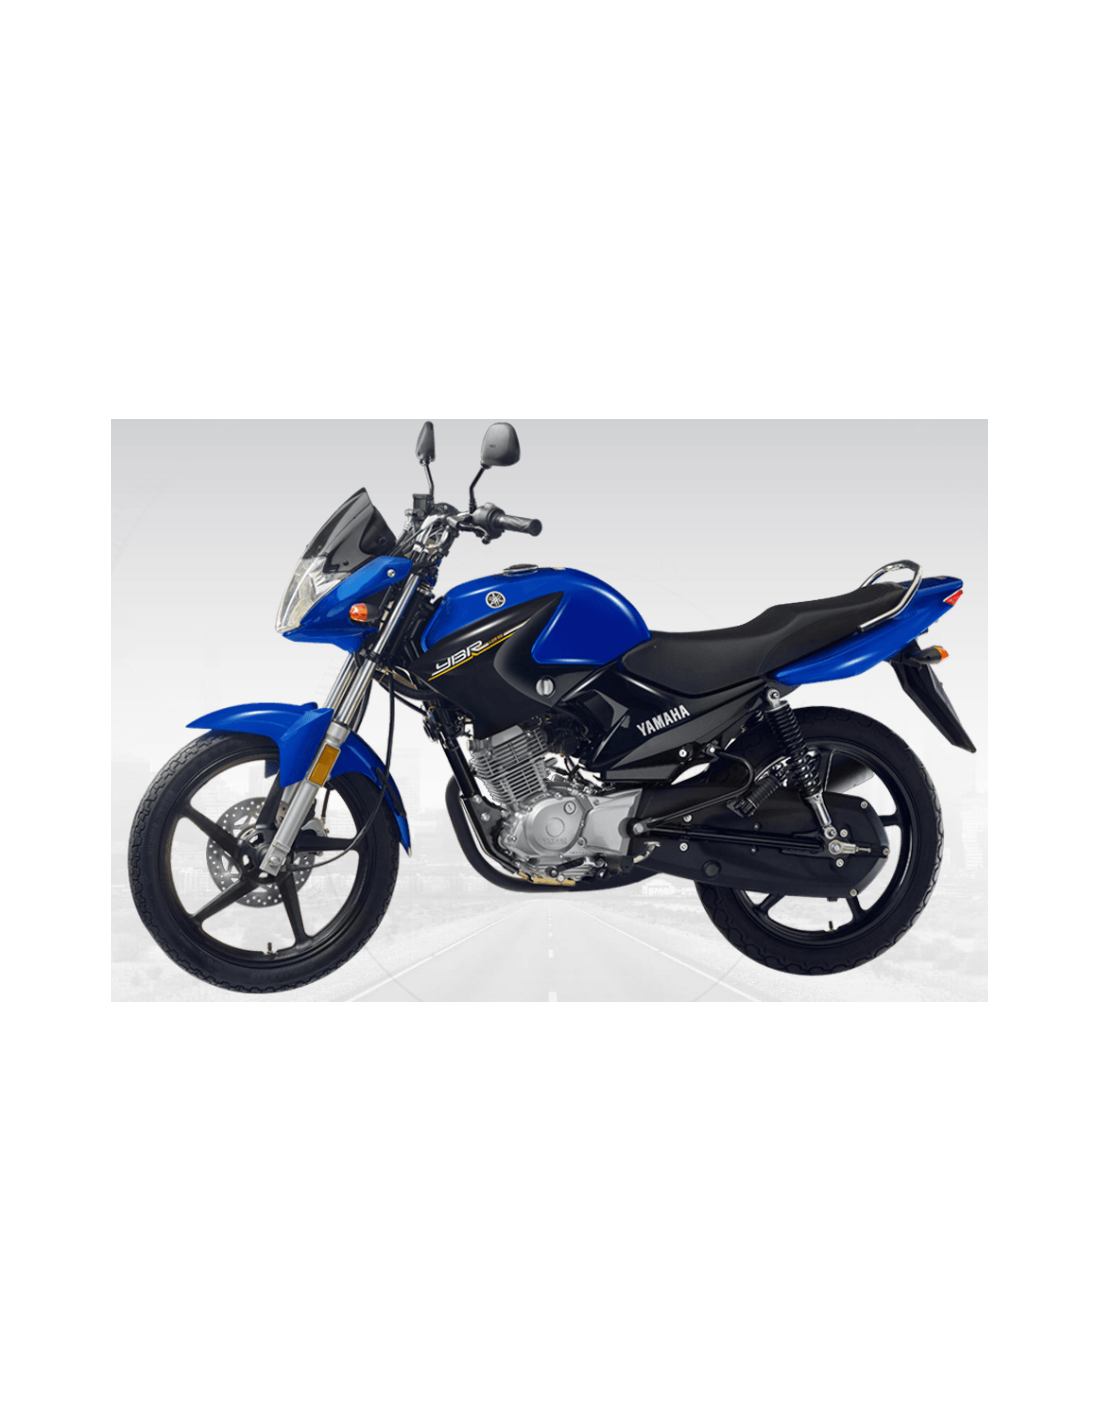 Yamaha Ybr 125 Price In Pakistan Rating Reviews And Pictures